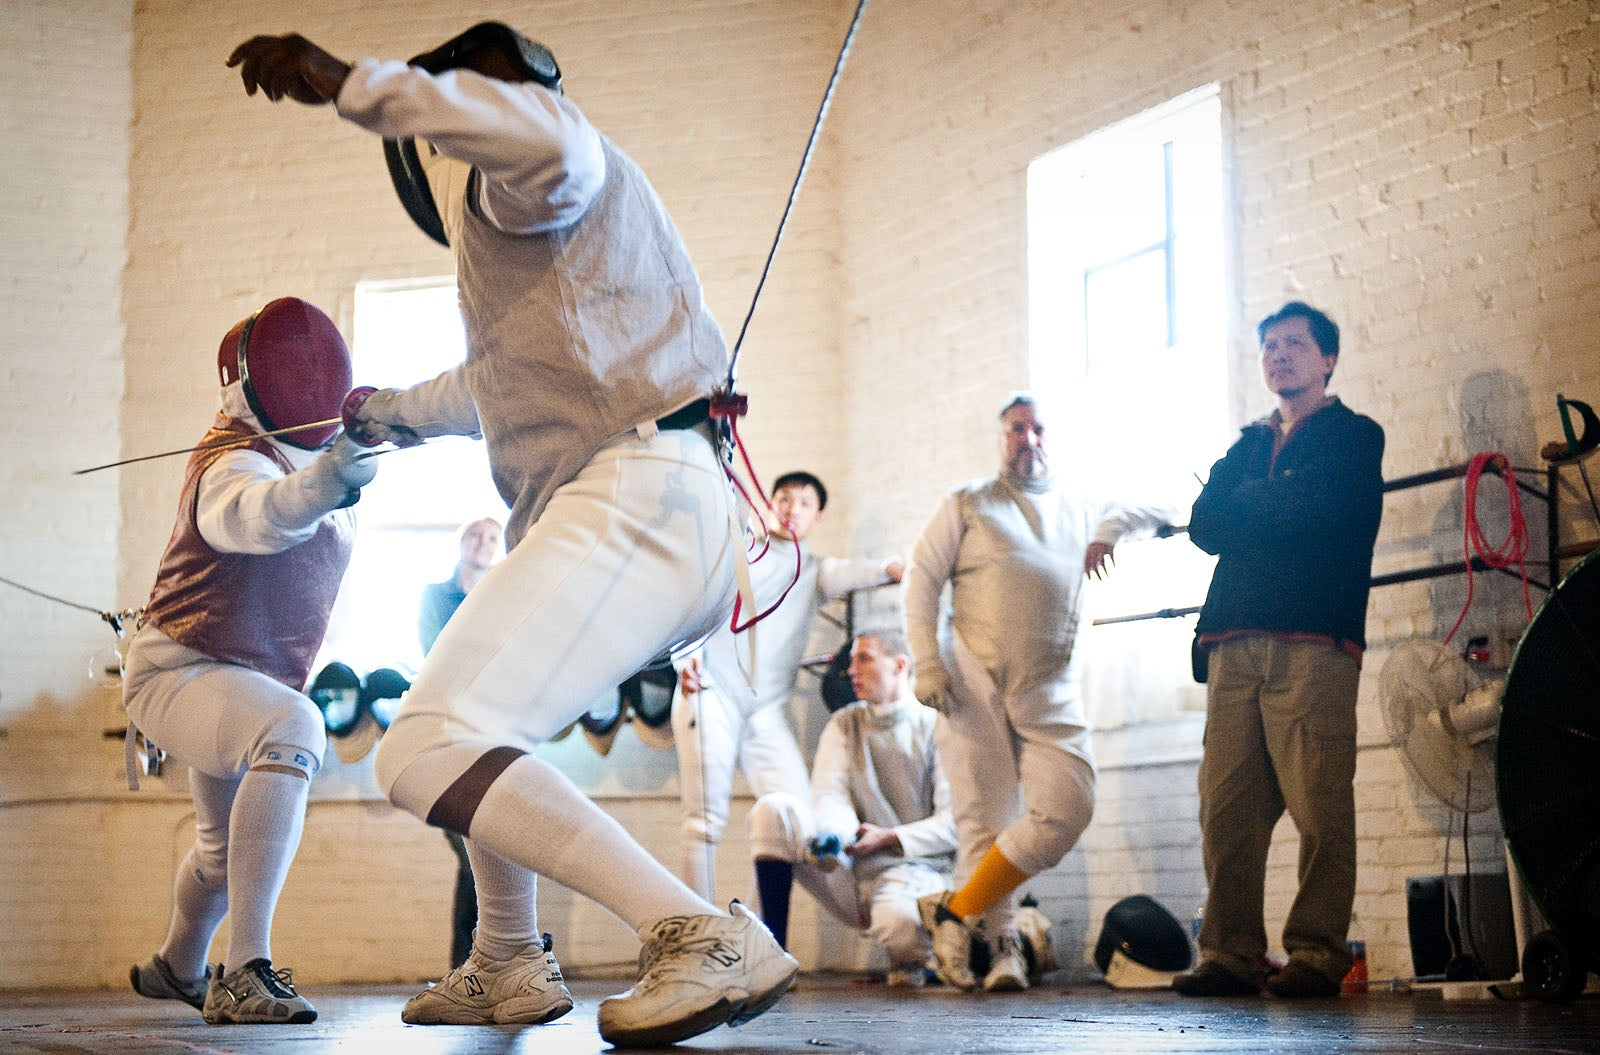 ALL AMERICAN FENCING ACADEMY,adult classes,camps,classes,fencing,recreation,sport,summer camps,youth classes